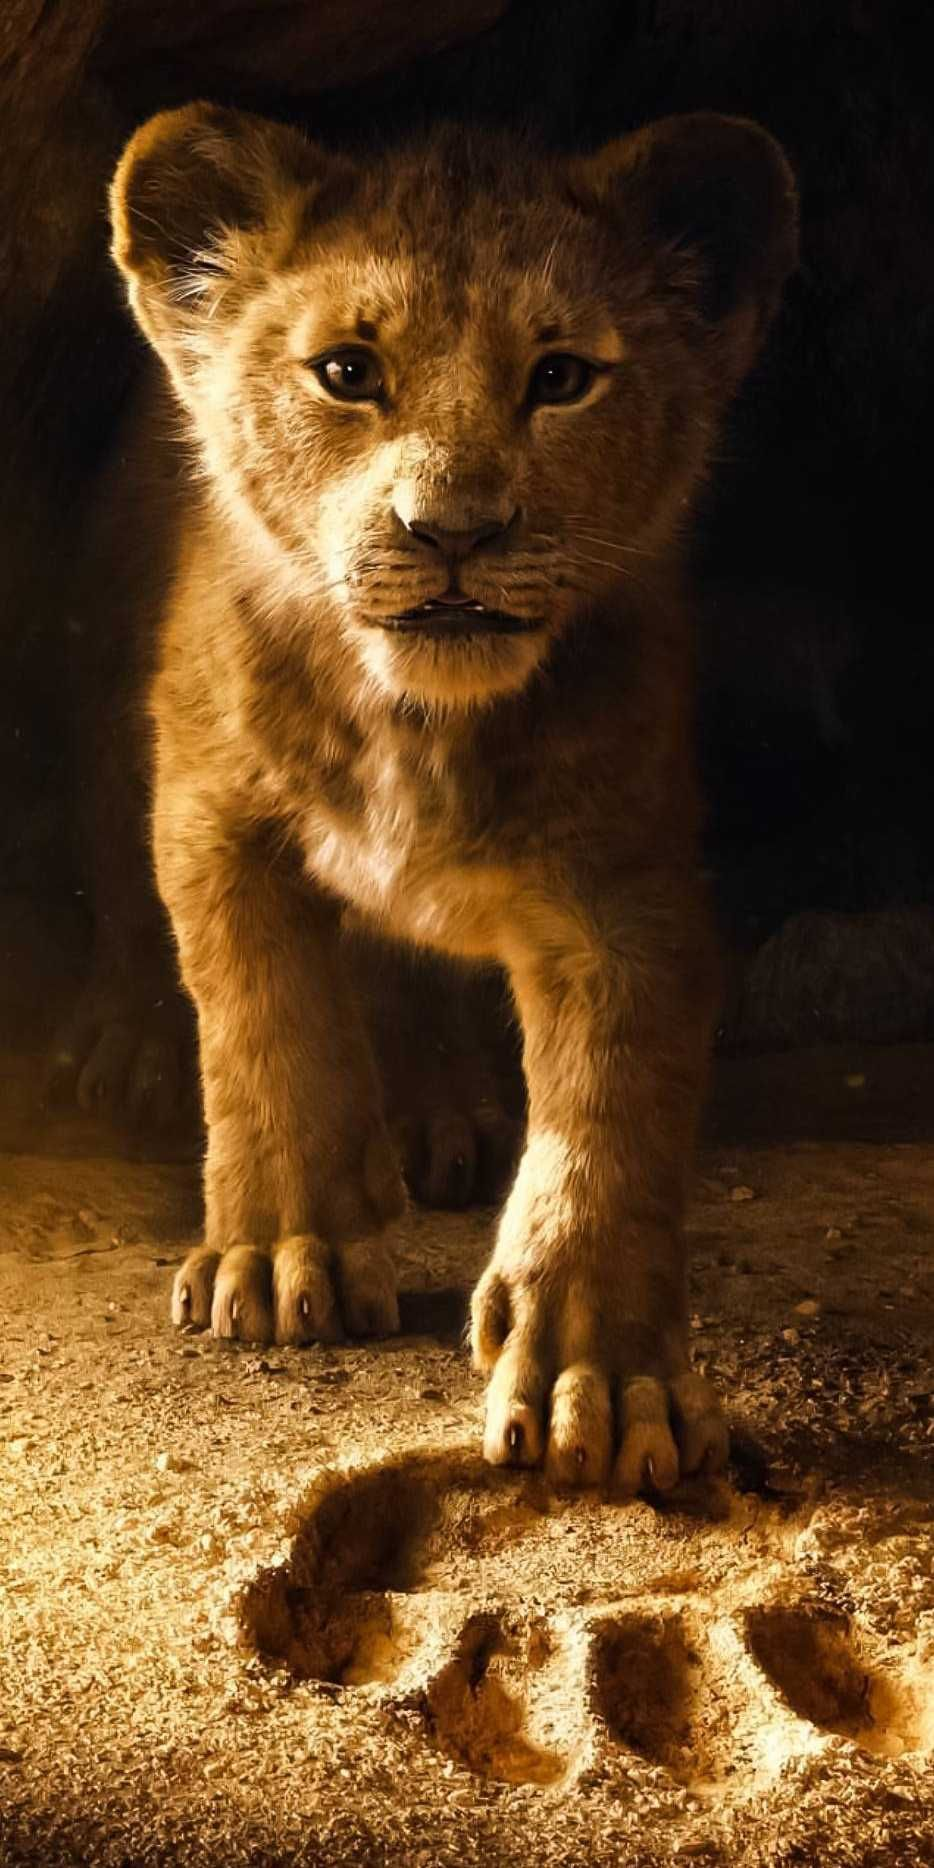 Free Download The Lion King Iphone Wallpaper Iphone